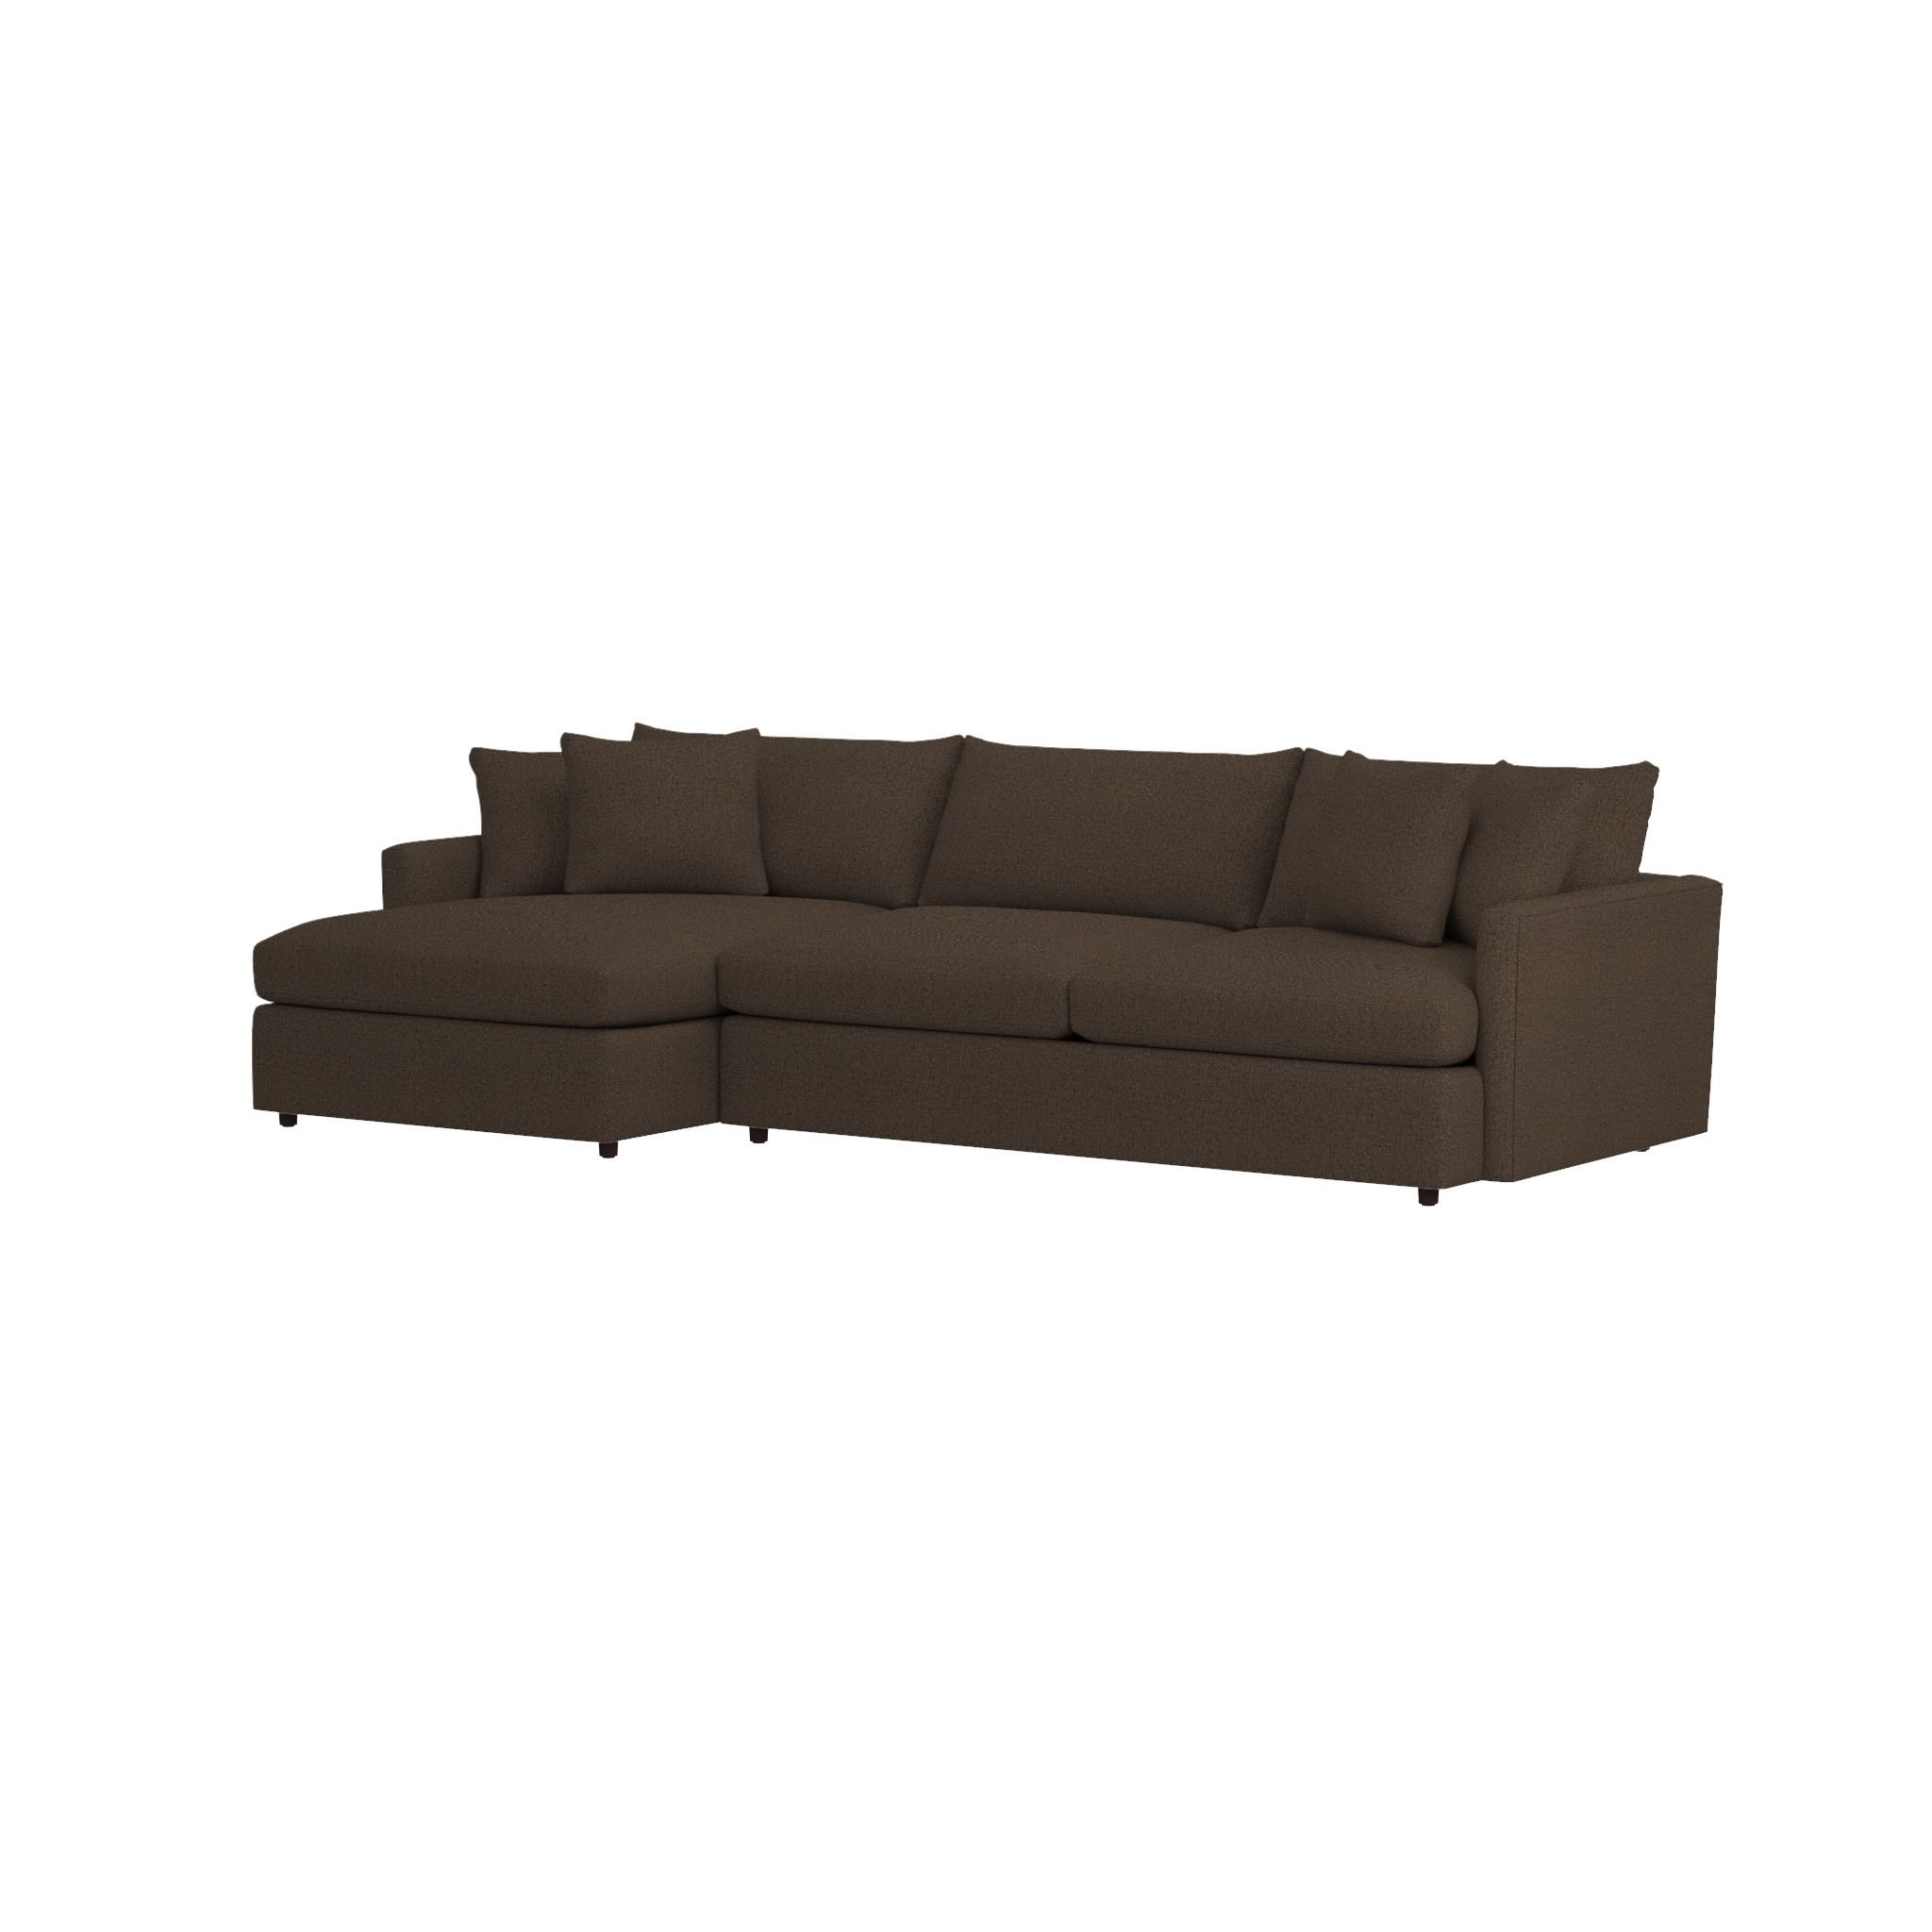 Lounge Ii Grey Chaise Lounge Sectional | Crate And Barrel Inside Sectional Crate And Barrel (View 3 of 20)